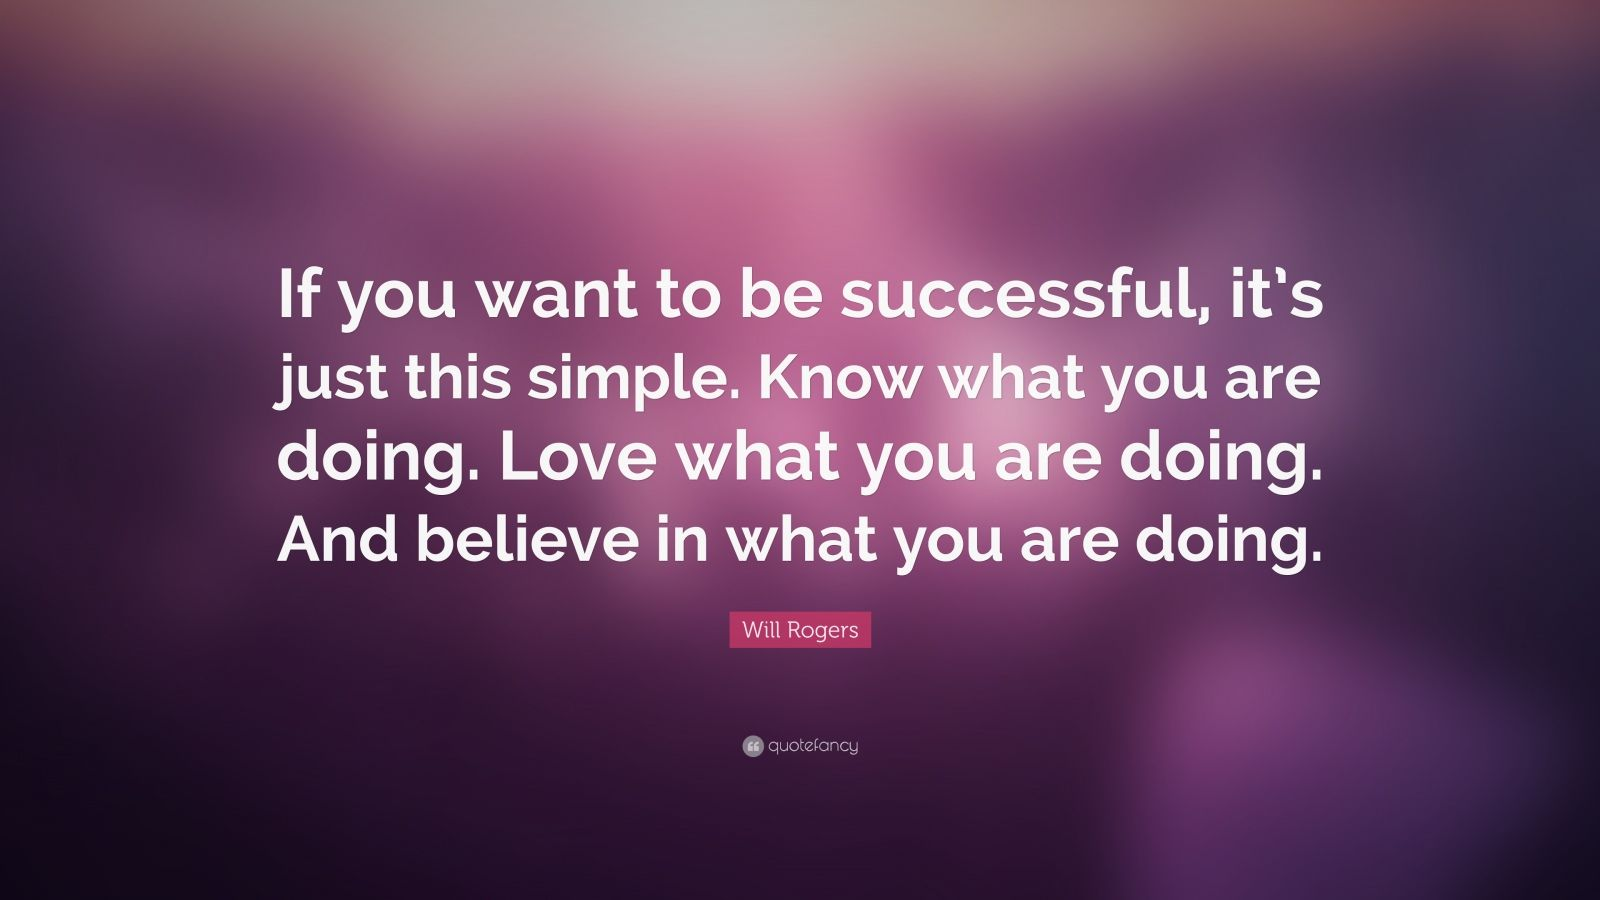 """Will Rogers Quote: """"If you want to be successful, it's just this simple. Know what you are doing. Love what you are doing. And believe in what you are doing."""""""